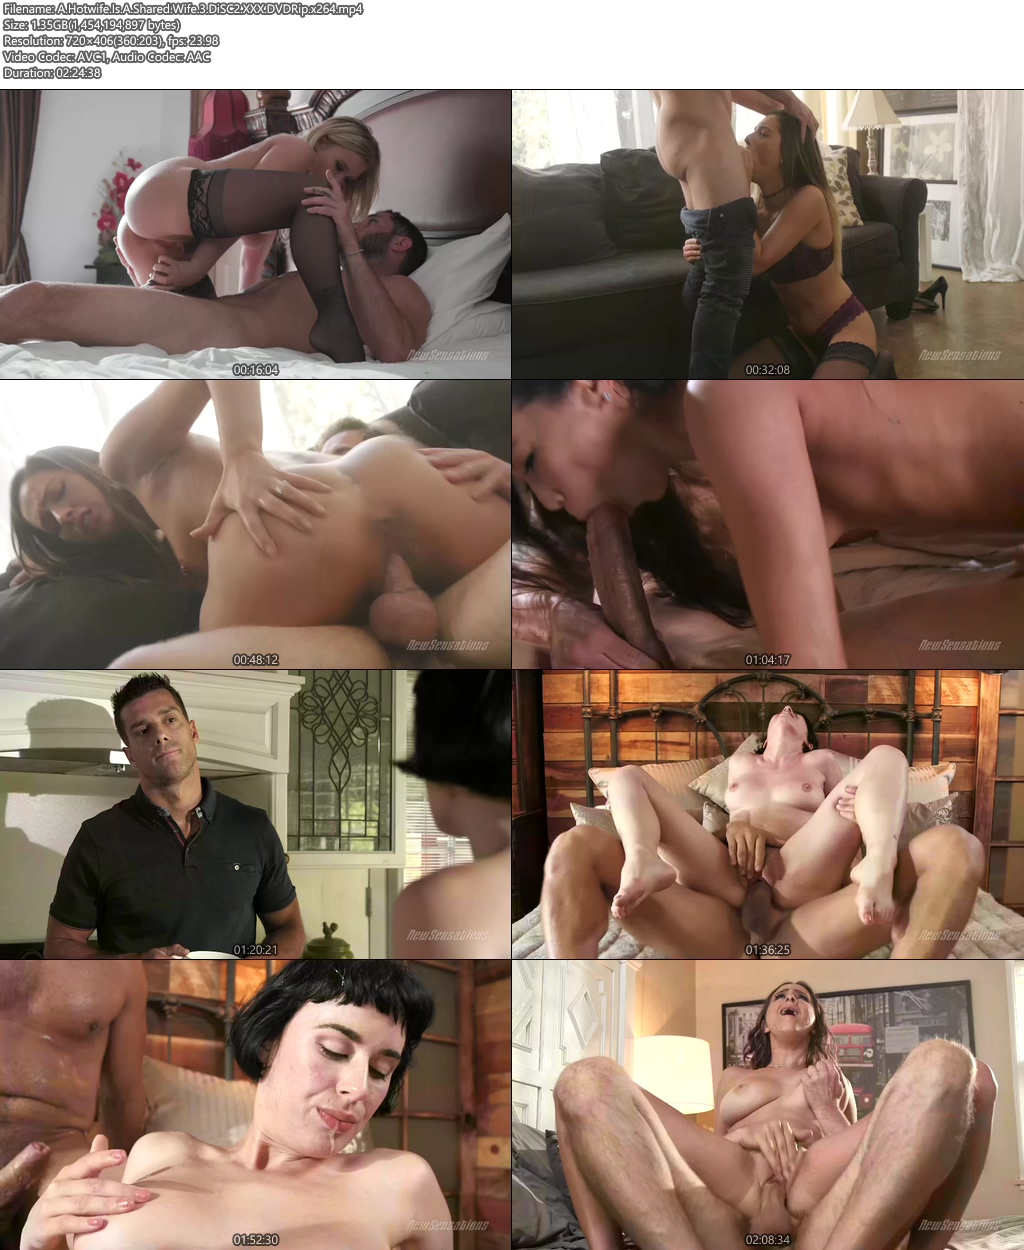 [18+] A Hotwife Is A Shared Wife 3 2019 DiSC2 XXX DVDRip Movie x264 Screenshot